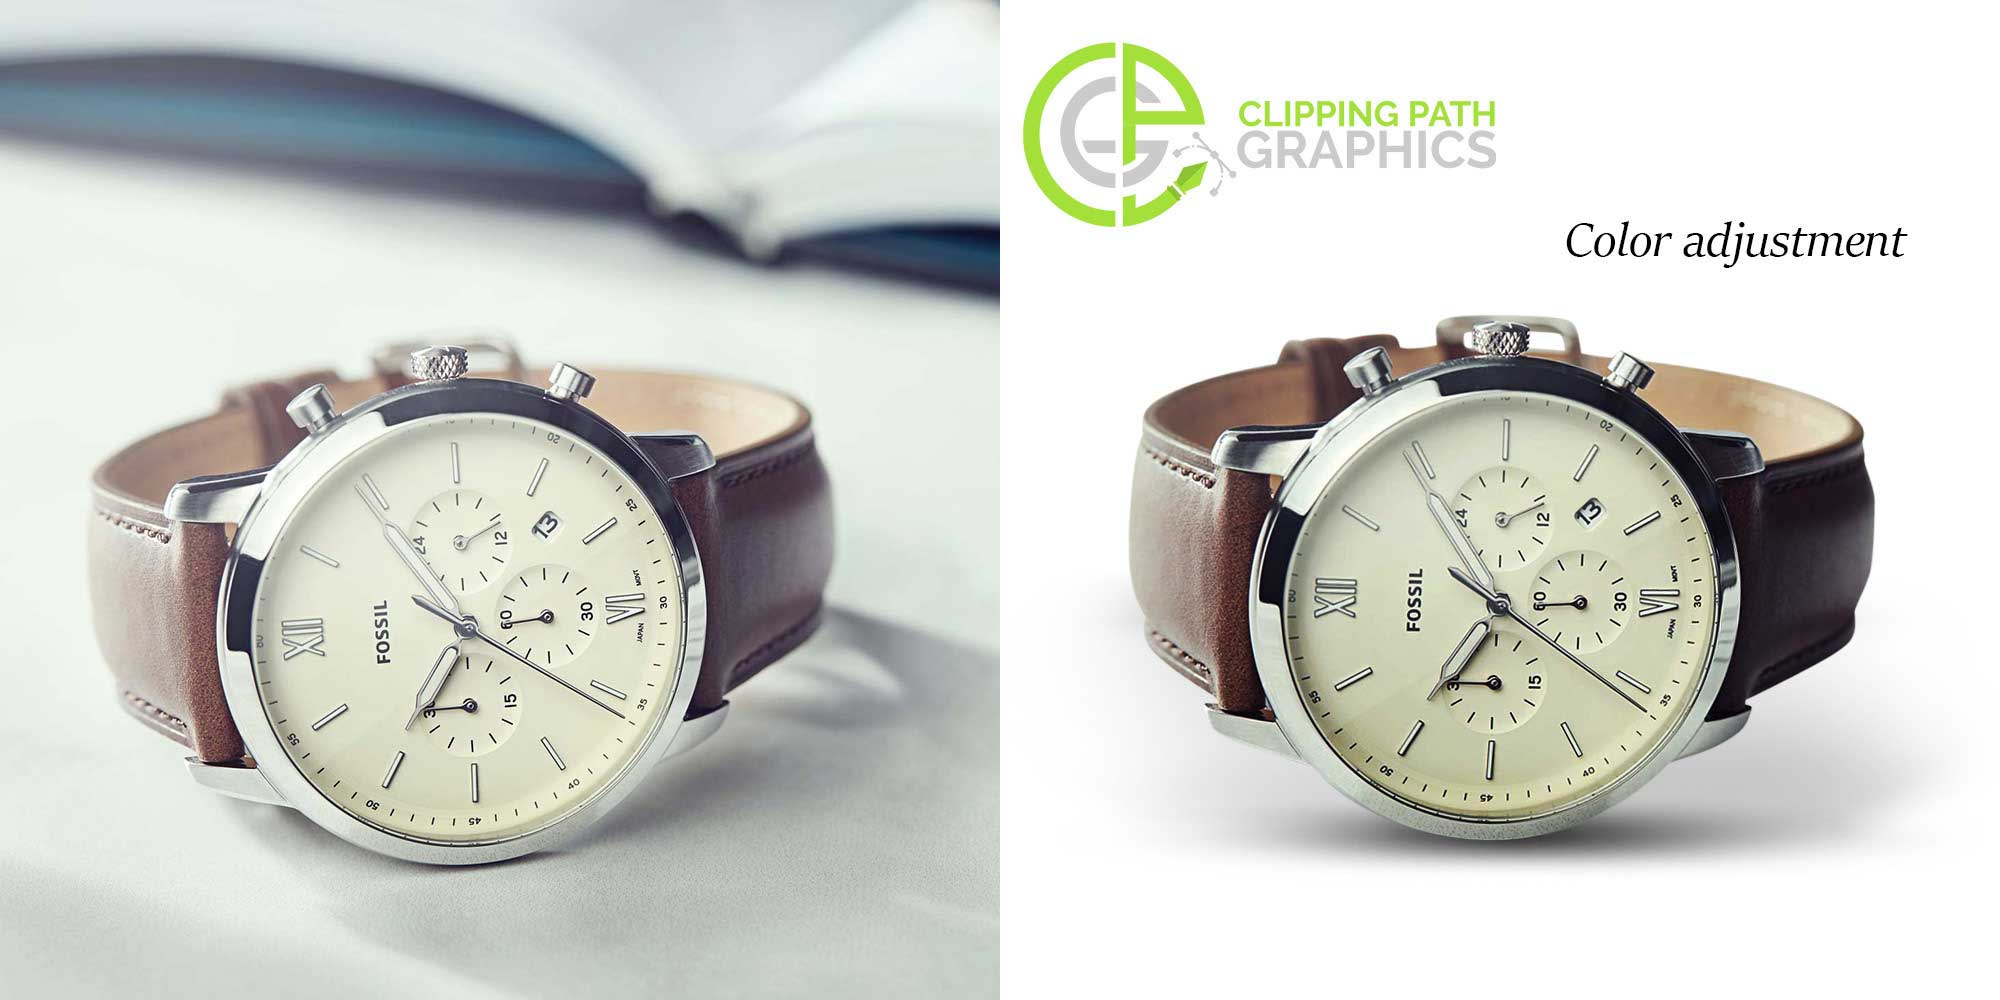 product photo editing 2- Clipping path graphics